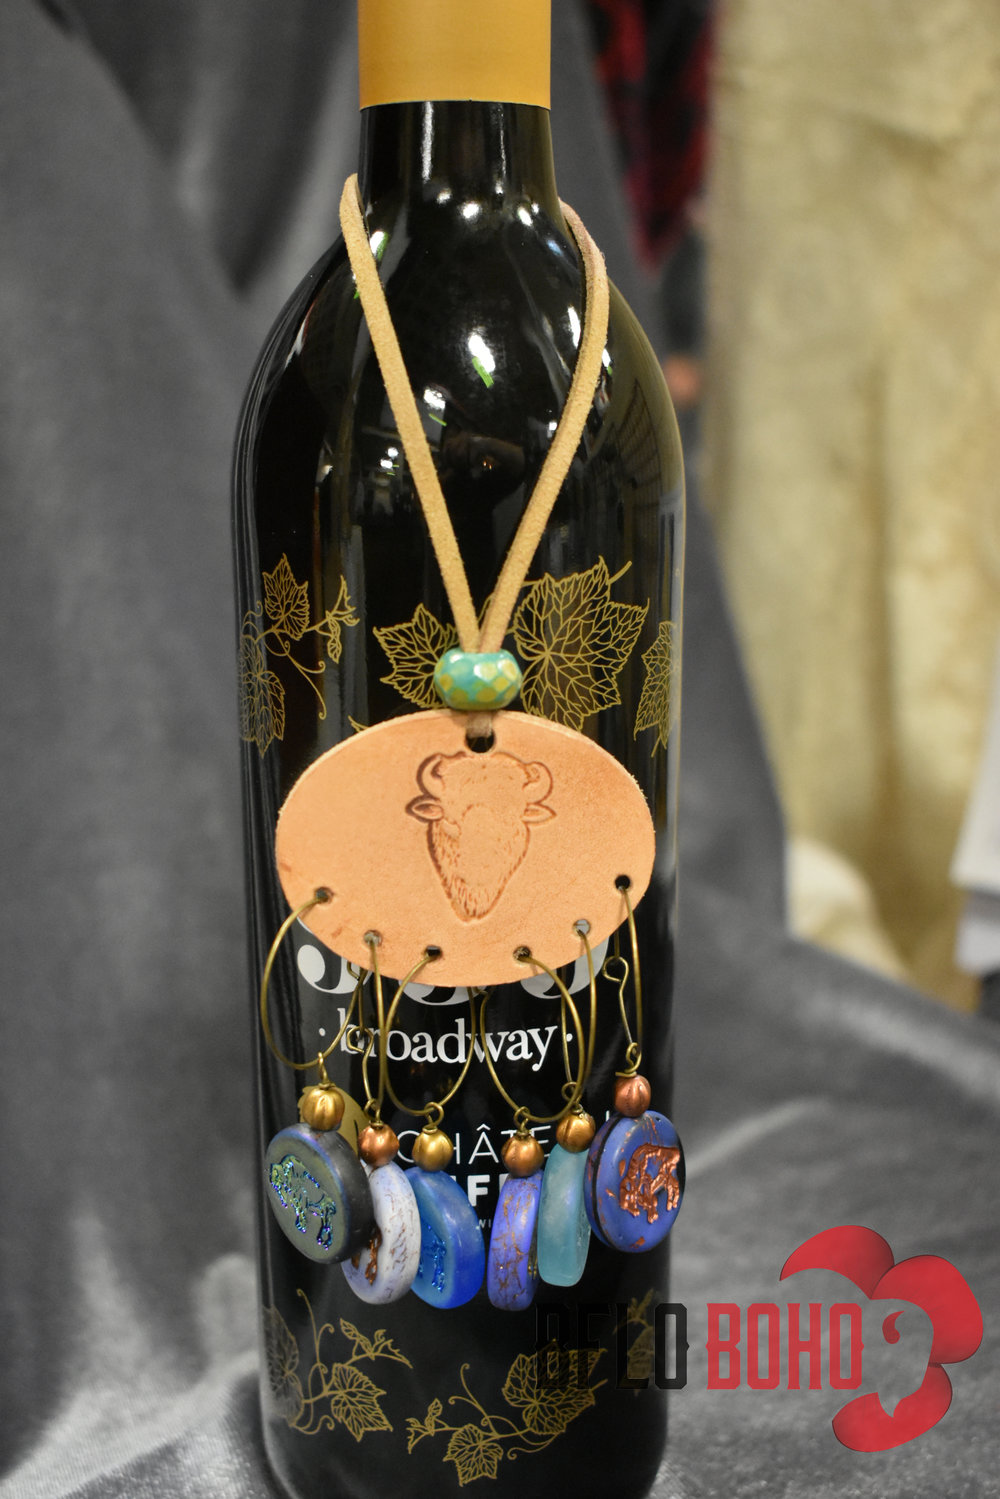 We created our gorgeous Chateau Buffalo wine charms in tribute to Carl and Susie — and their incredible product — and offer $2.50 off any wine charm purchase at our Broadway Market booth - if you buy a bottle next door. Click the listing below to have a set shipped . Use discount code CHATBUFF and we'll ship them for free…